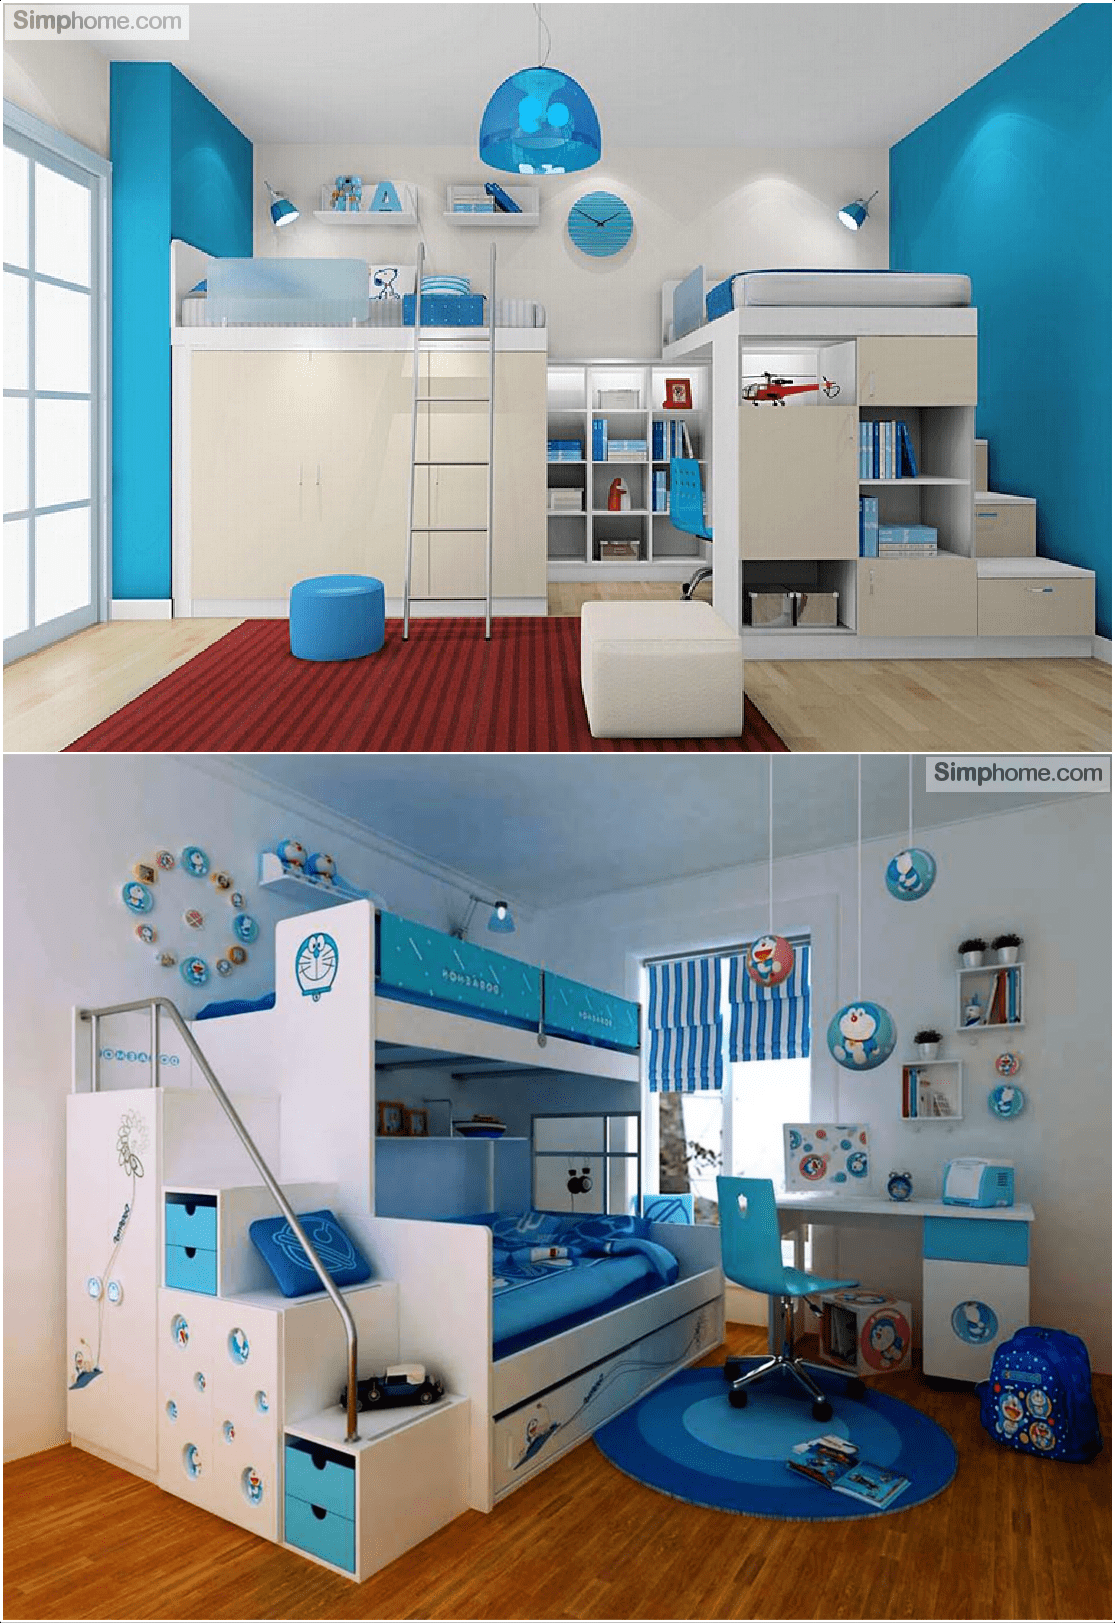 9.Modern Bedroom Accent Furniture for Boy by Simphome.com